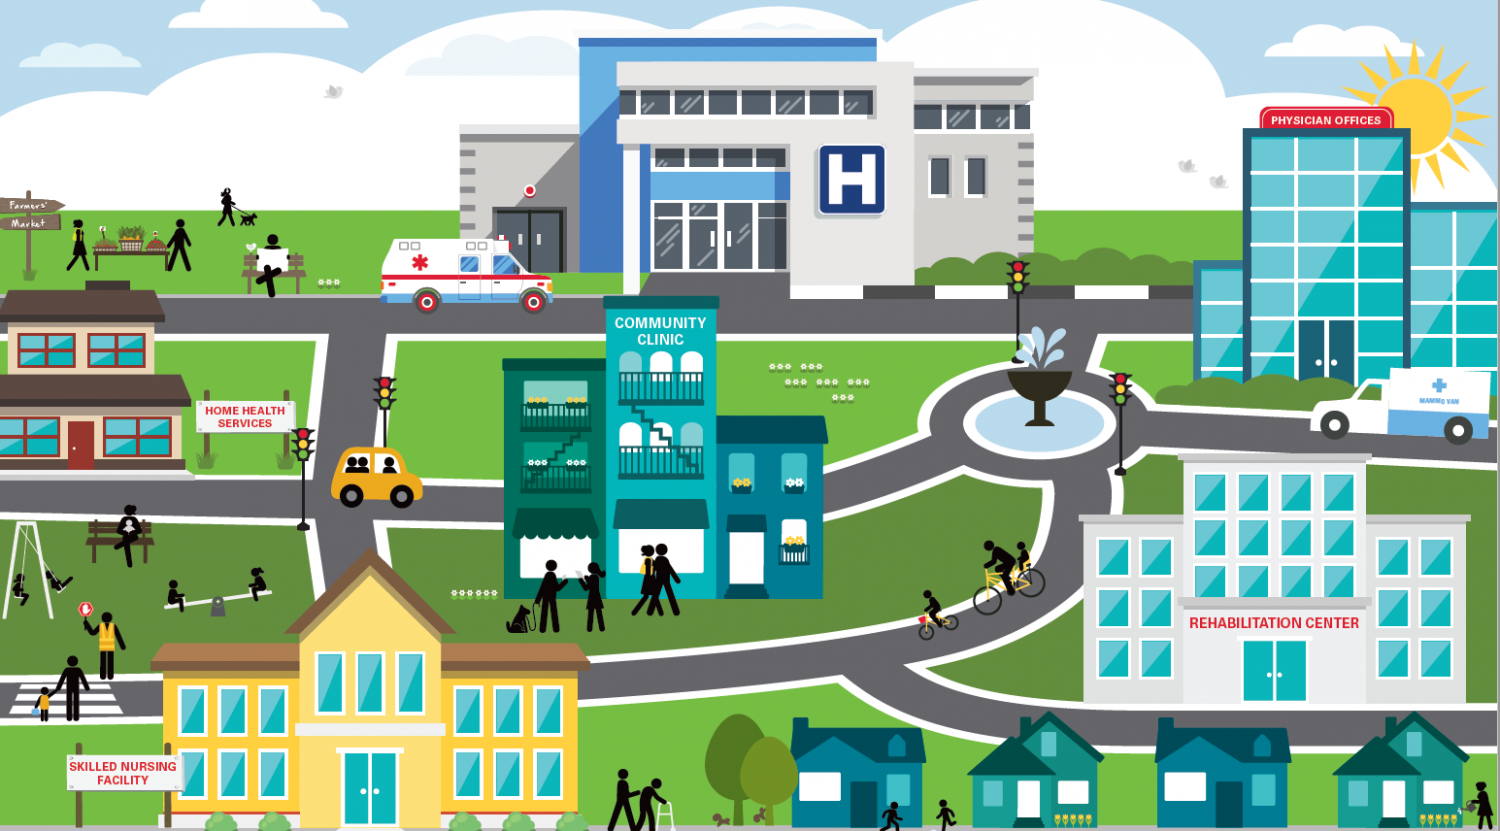 City scene with medical facilities highlighted